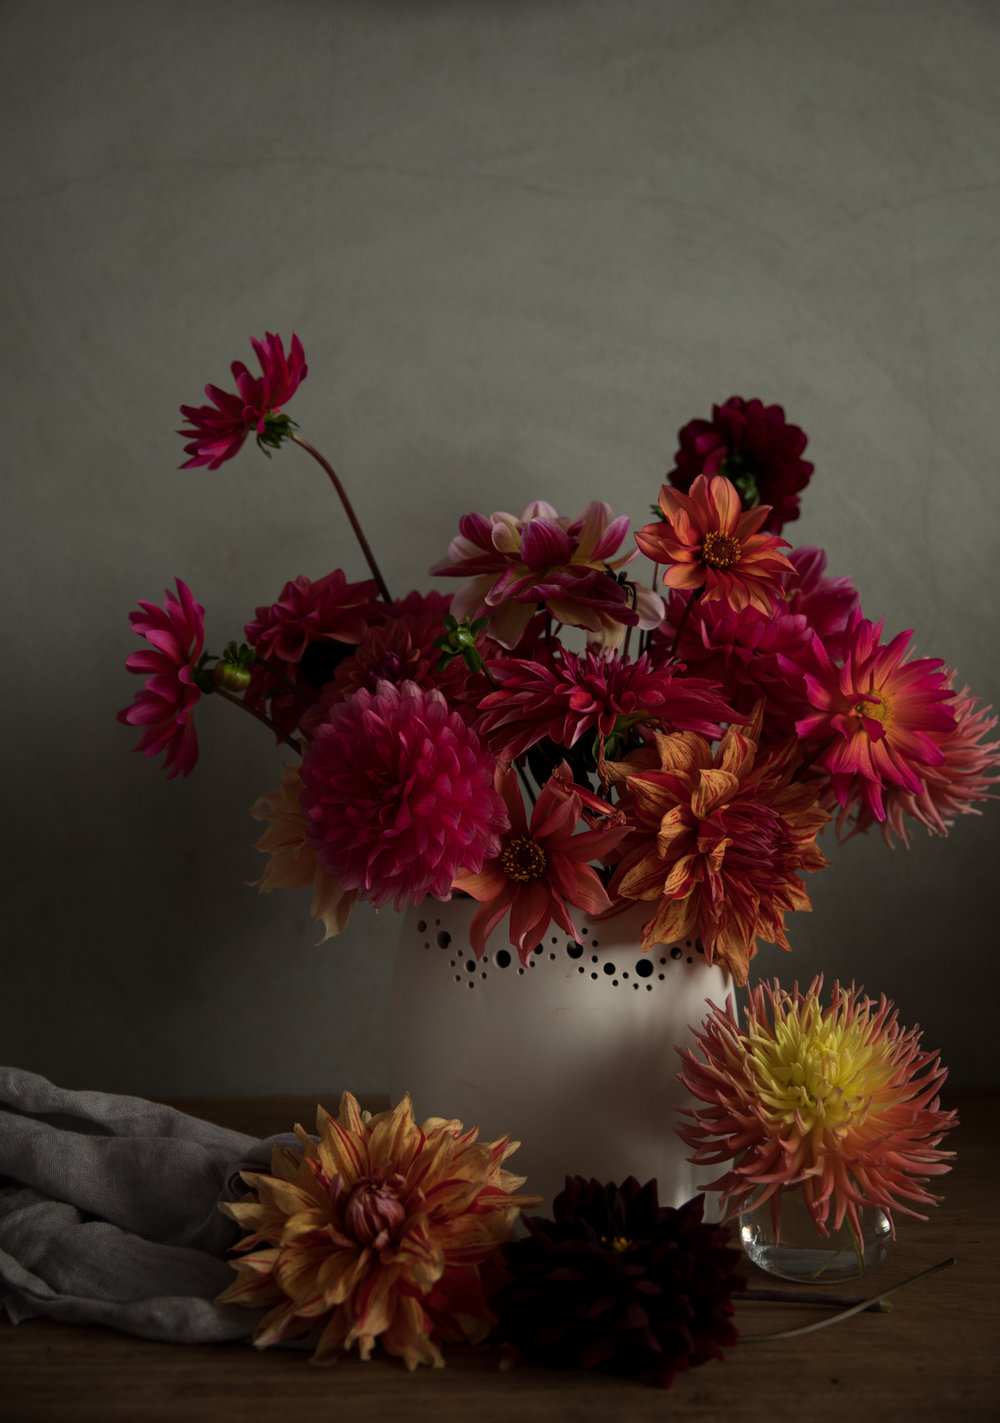 Dahlias from our astounding flower garden.